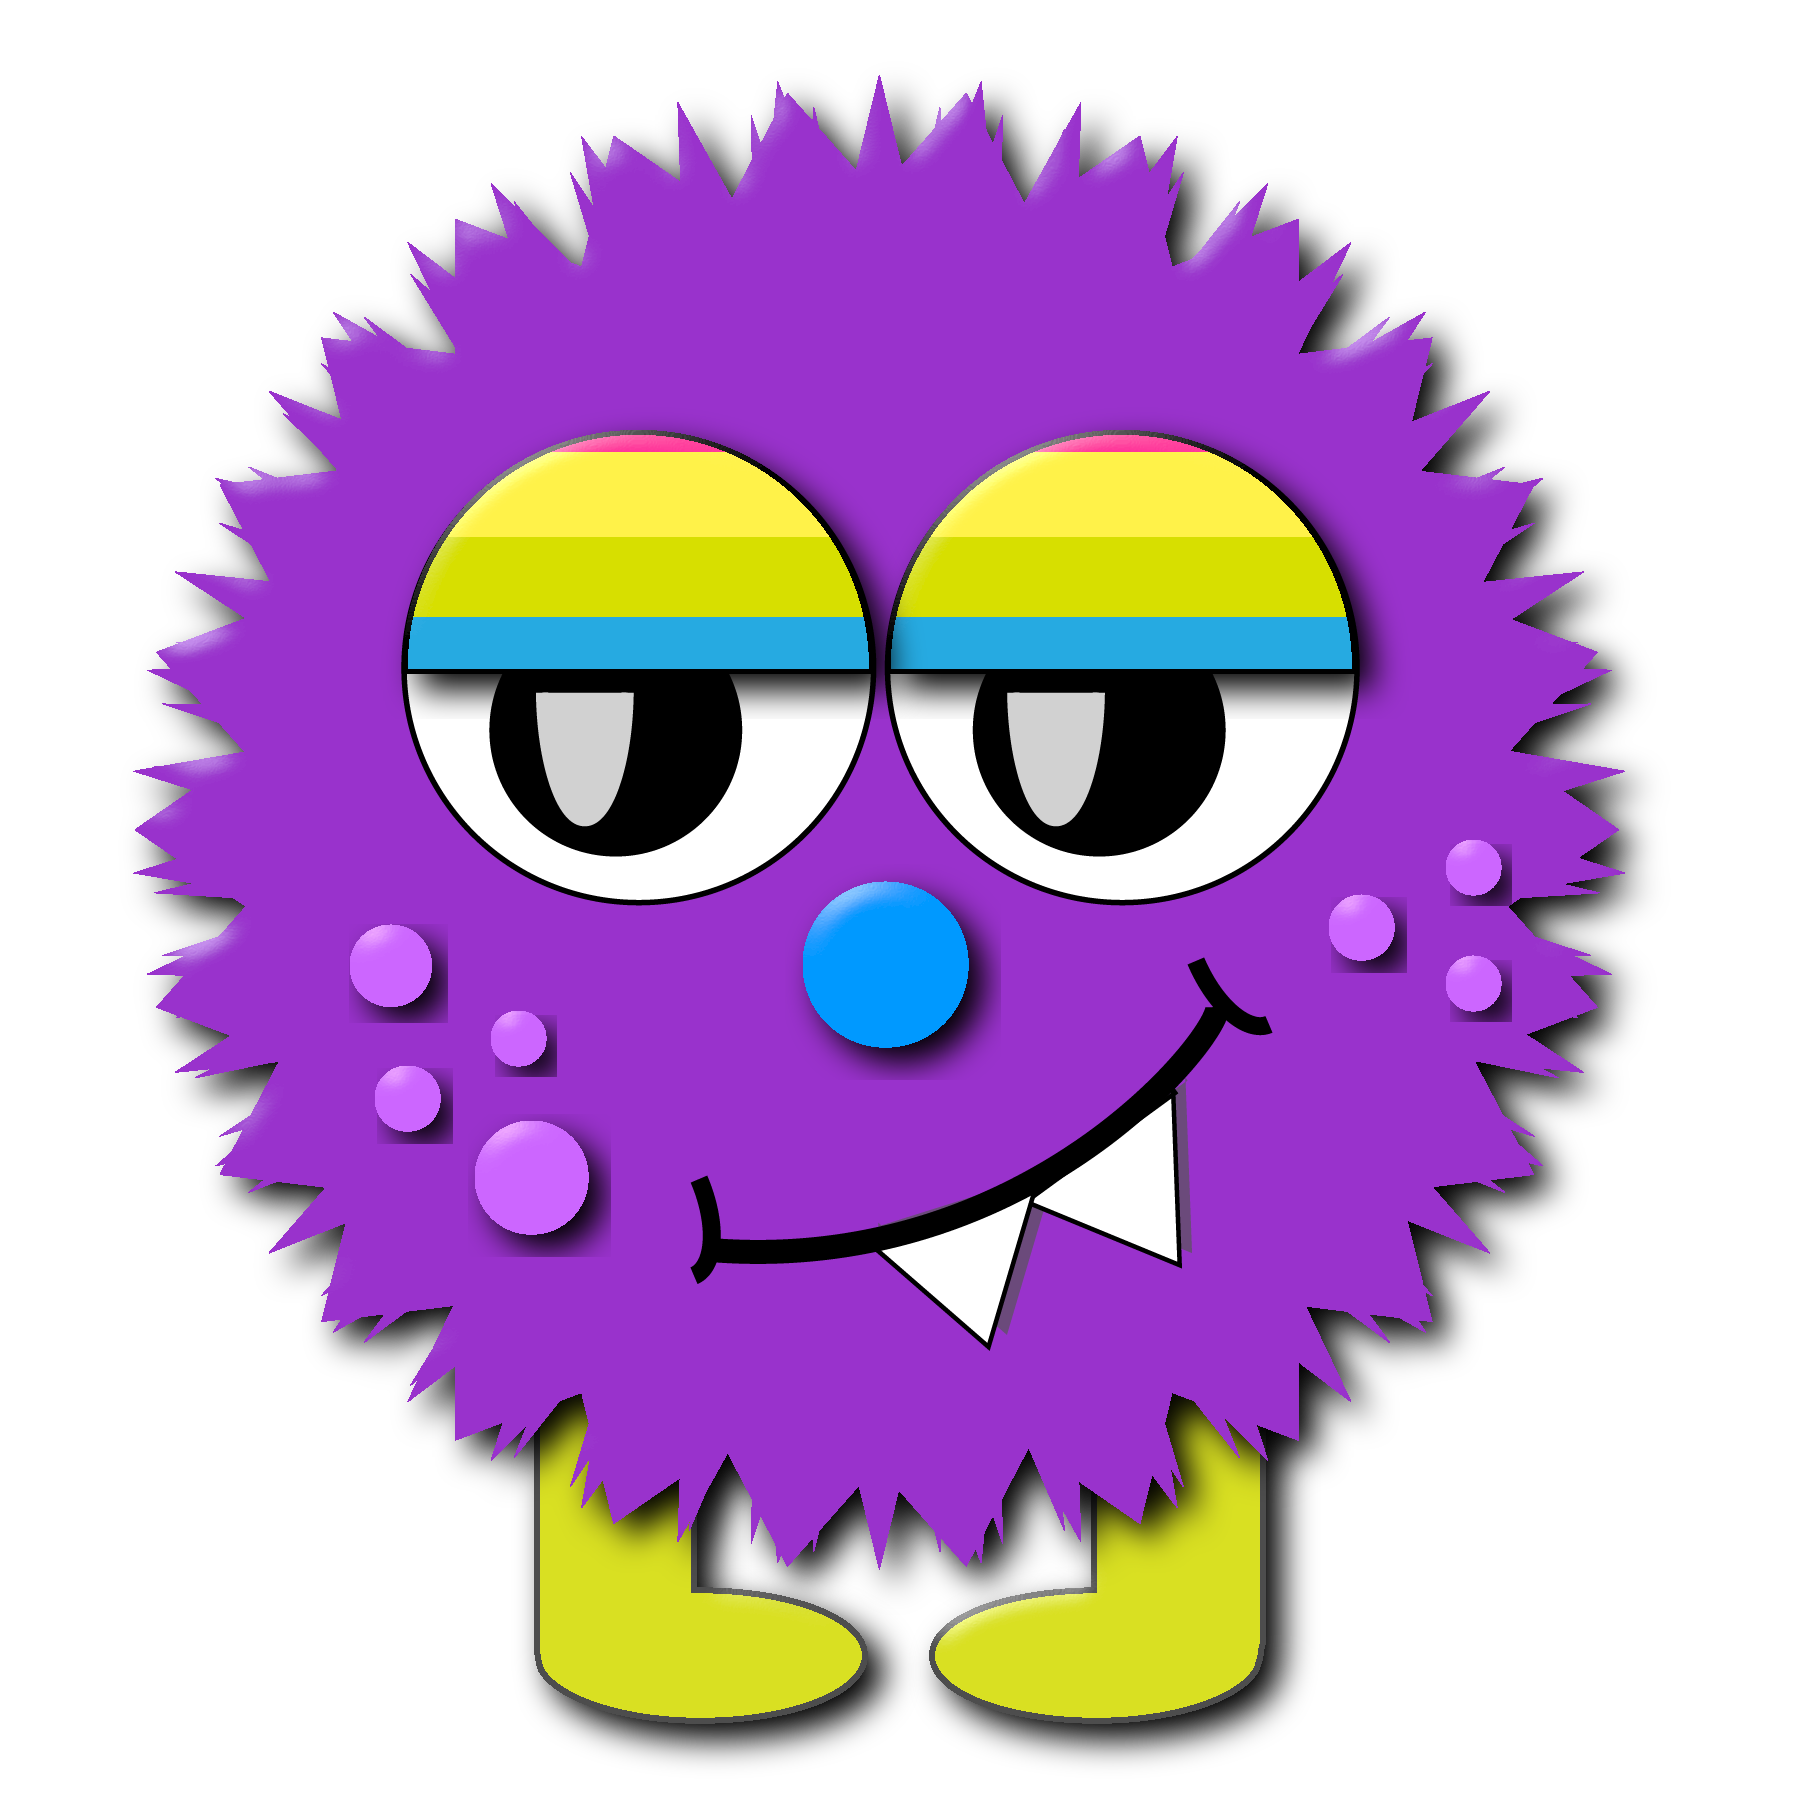 Monster clip art images free clipart 2